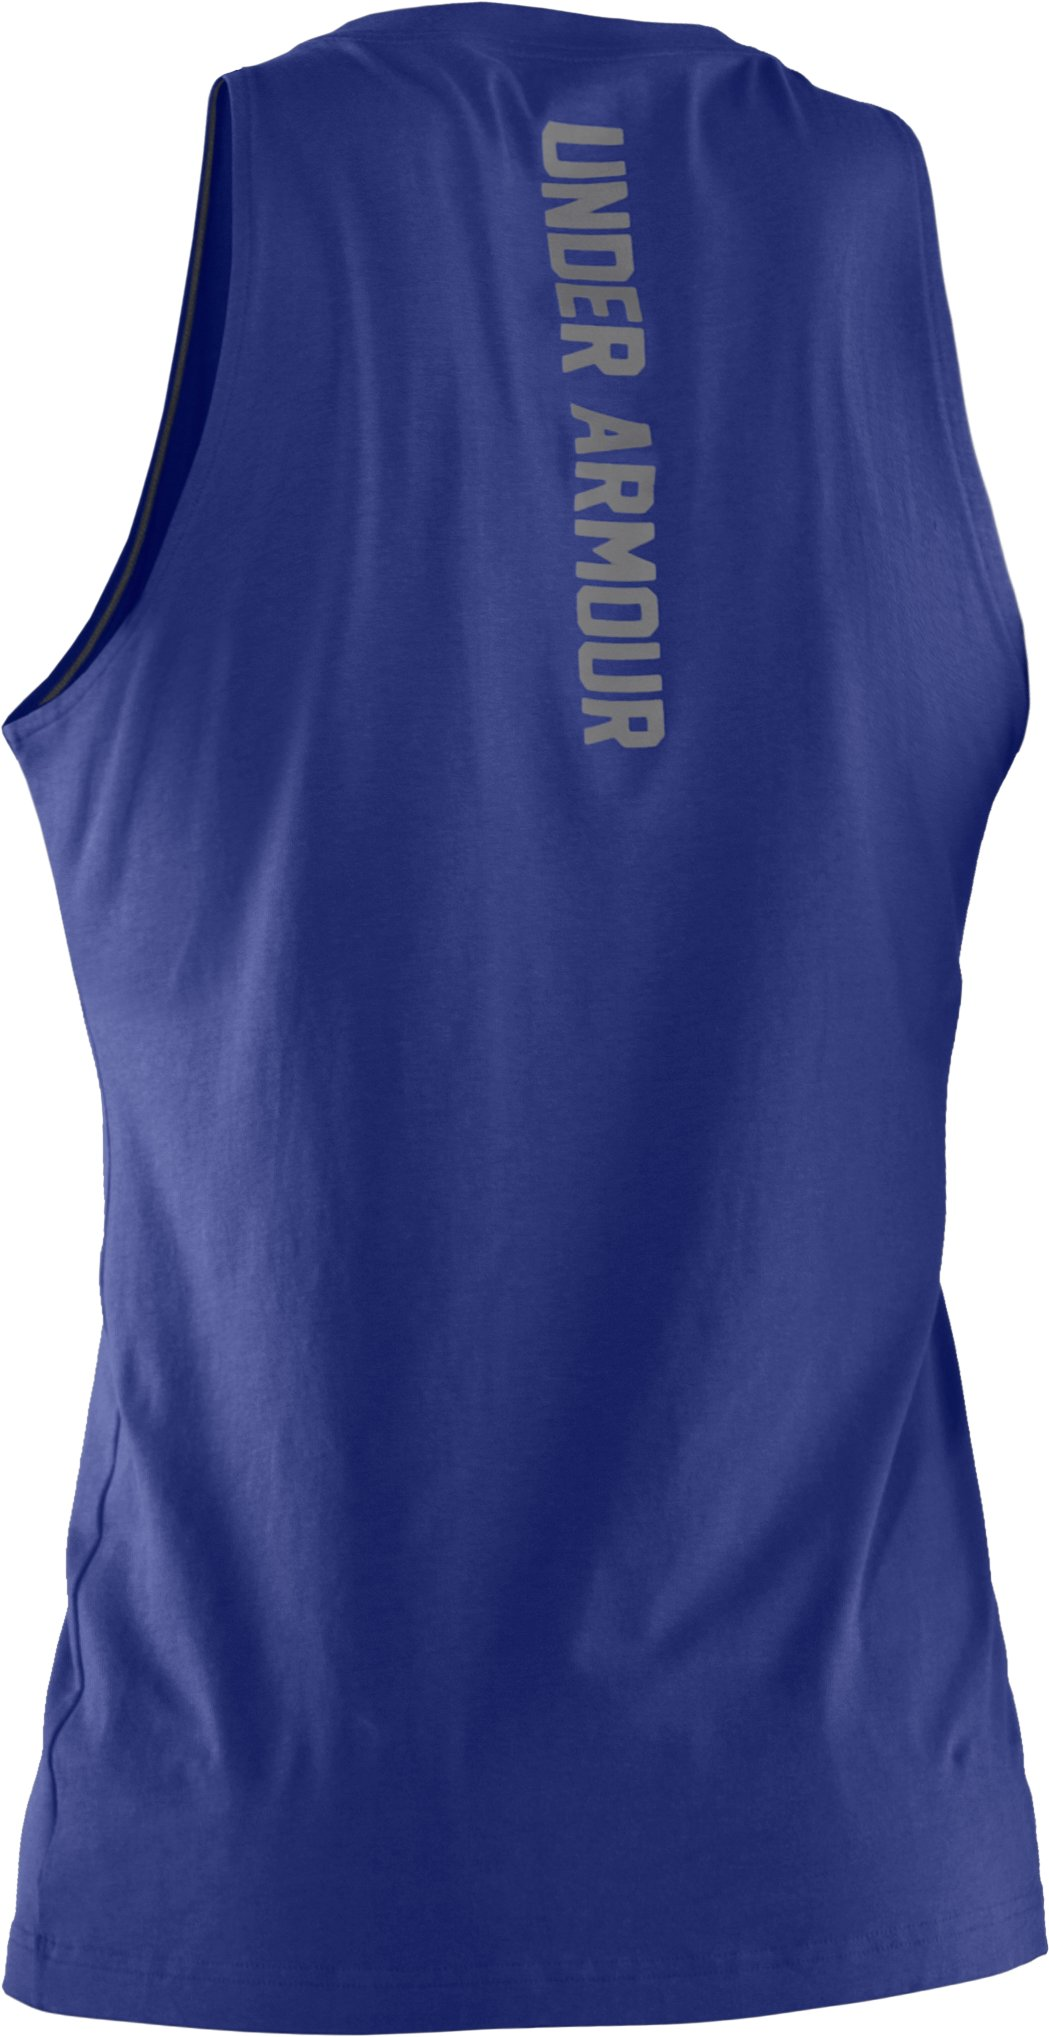 Men's Charged Cotton® Tank, Royal, undefined